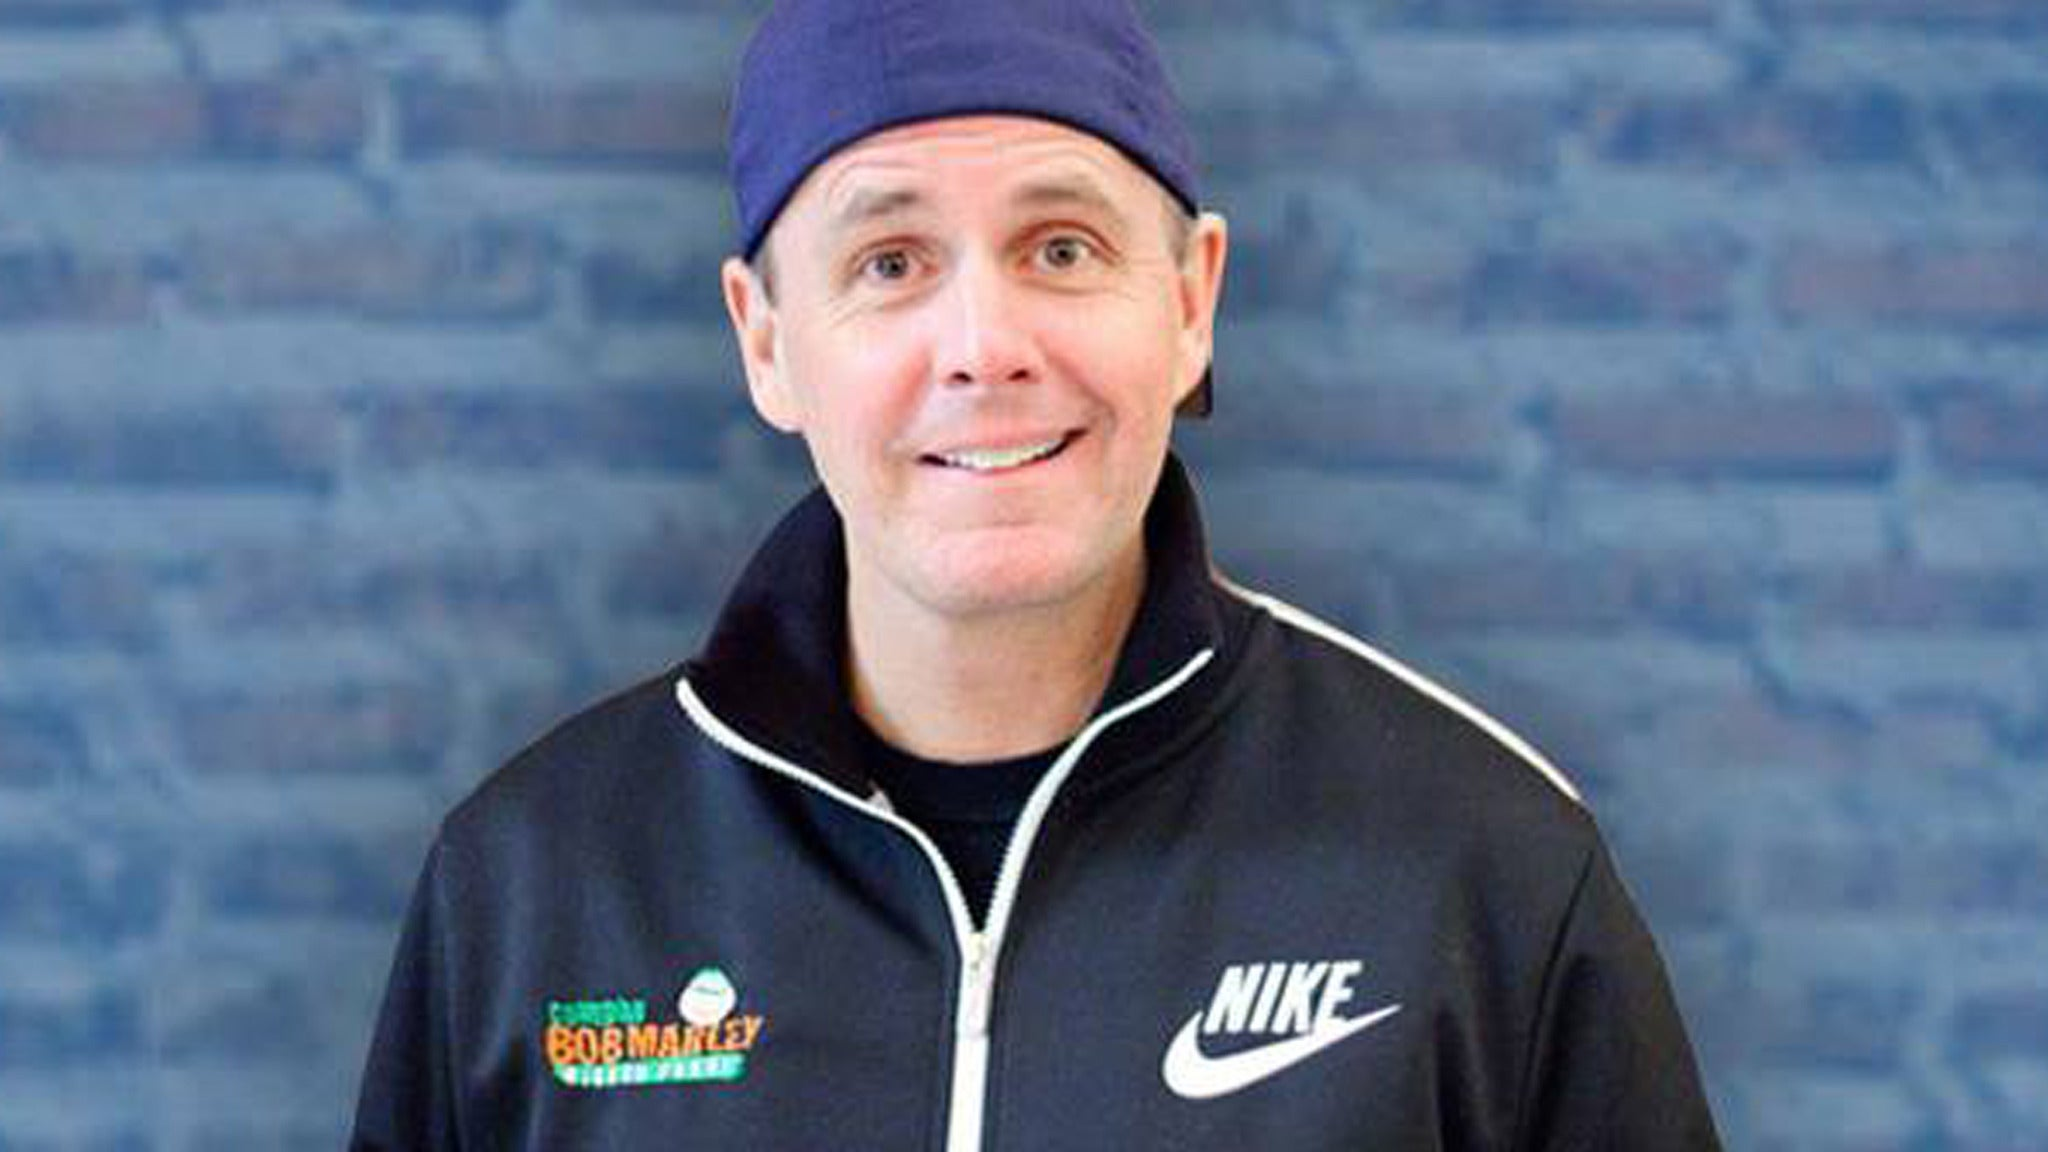 Comedian Bob Marley at Capitol Center for the Arts - NH